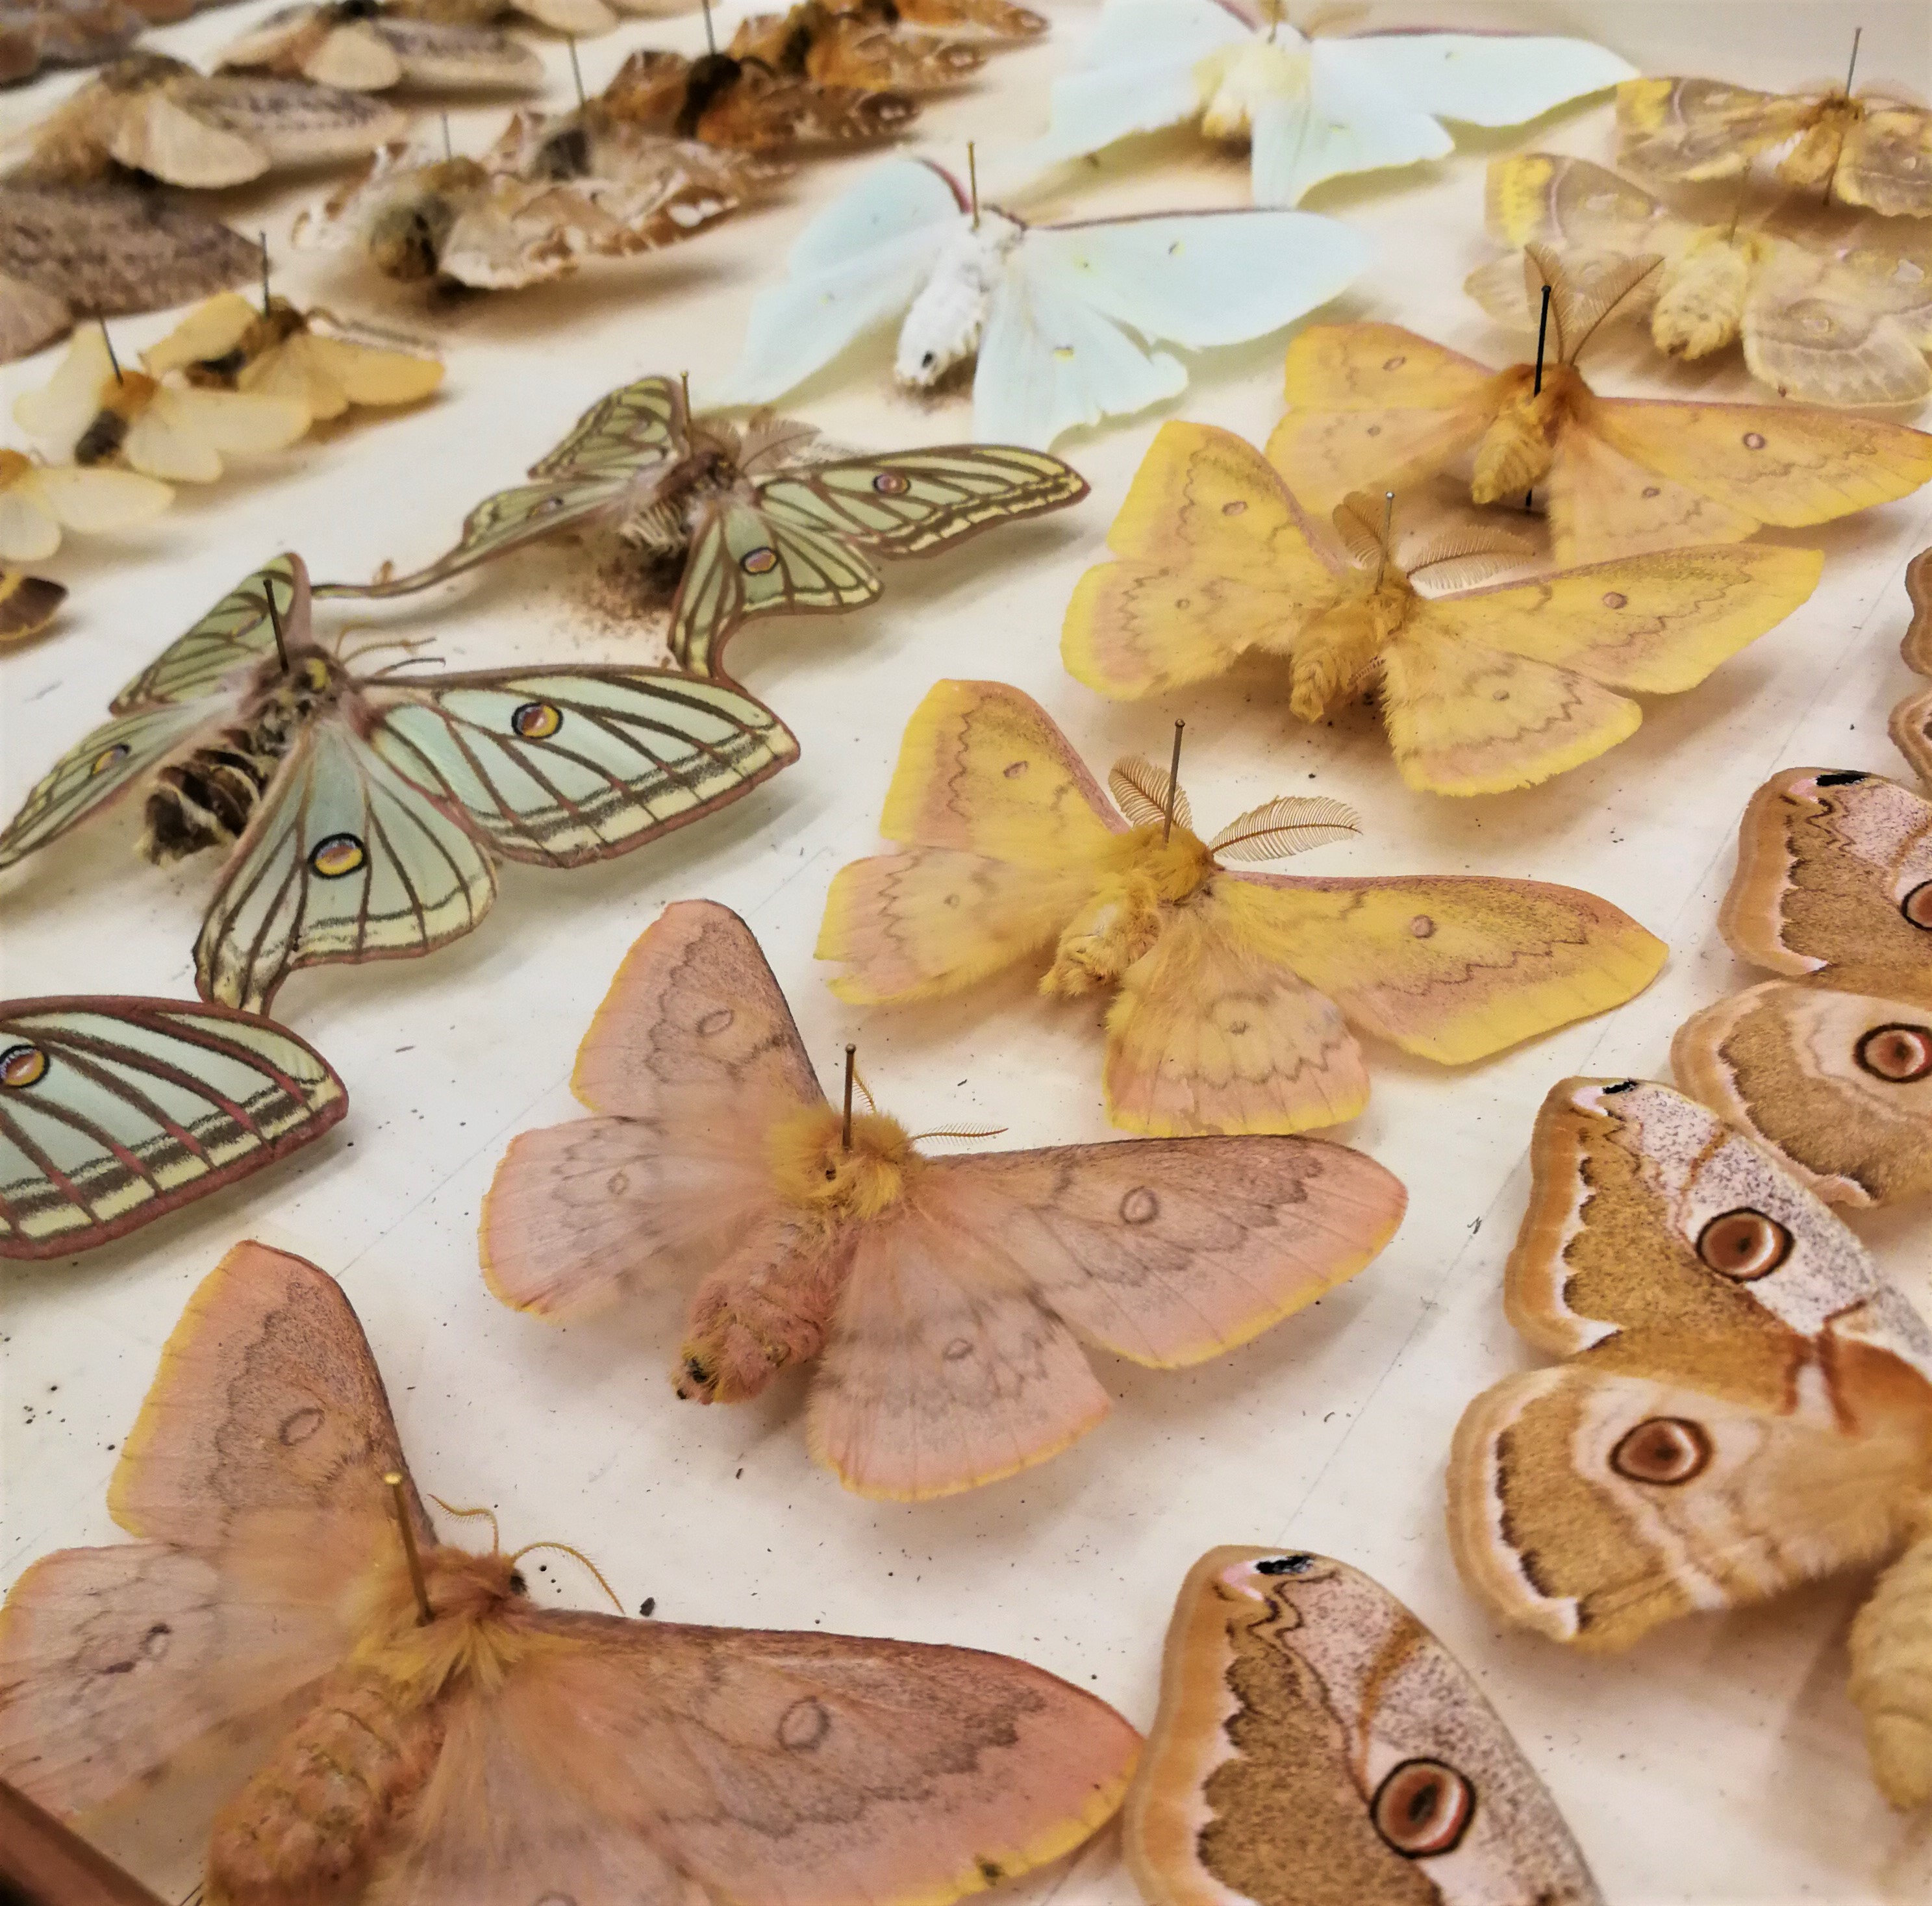 Colour photograph showing part of a drawer of pinned moths